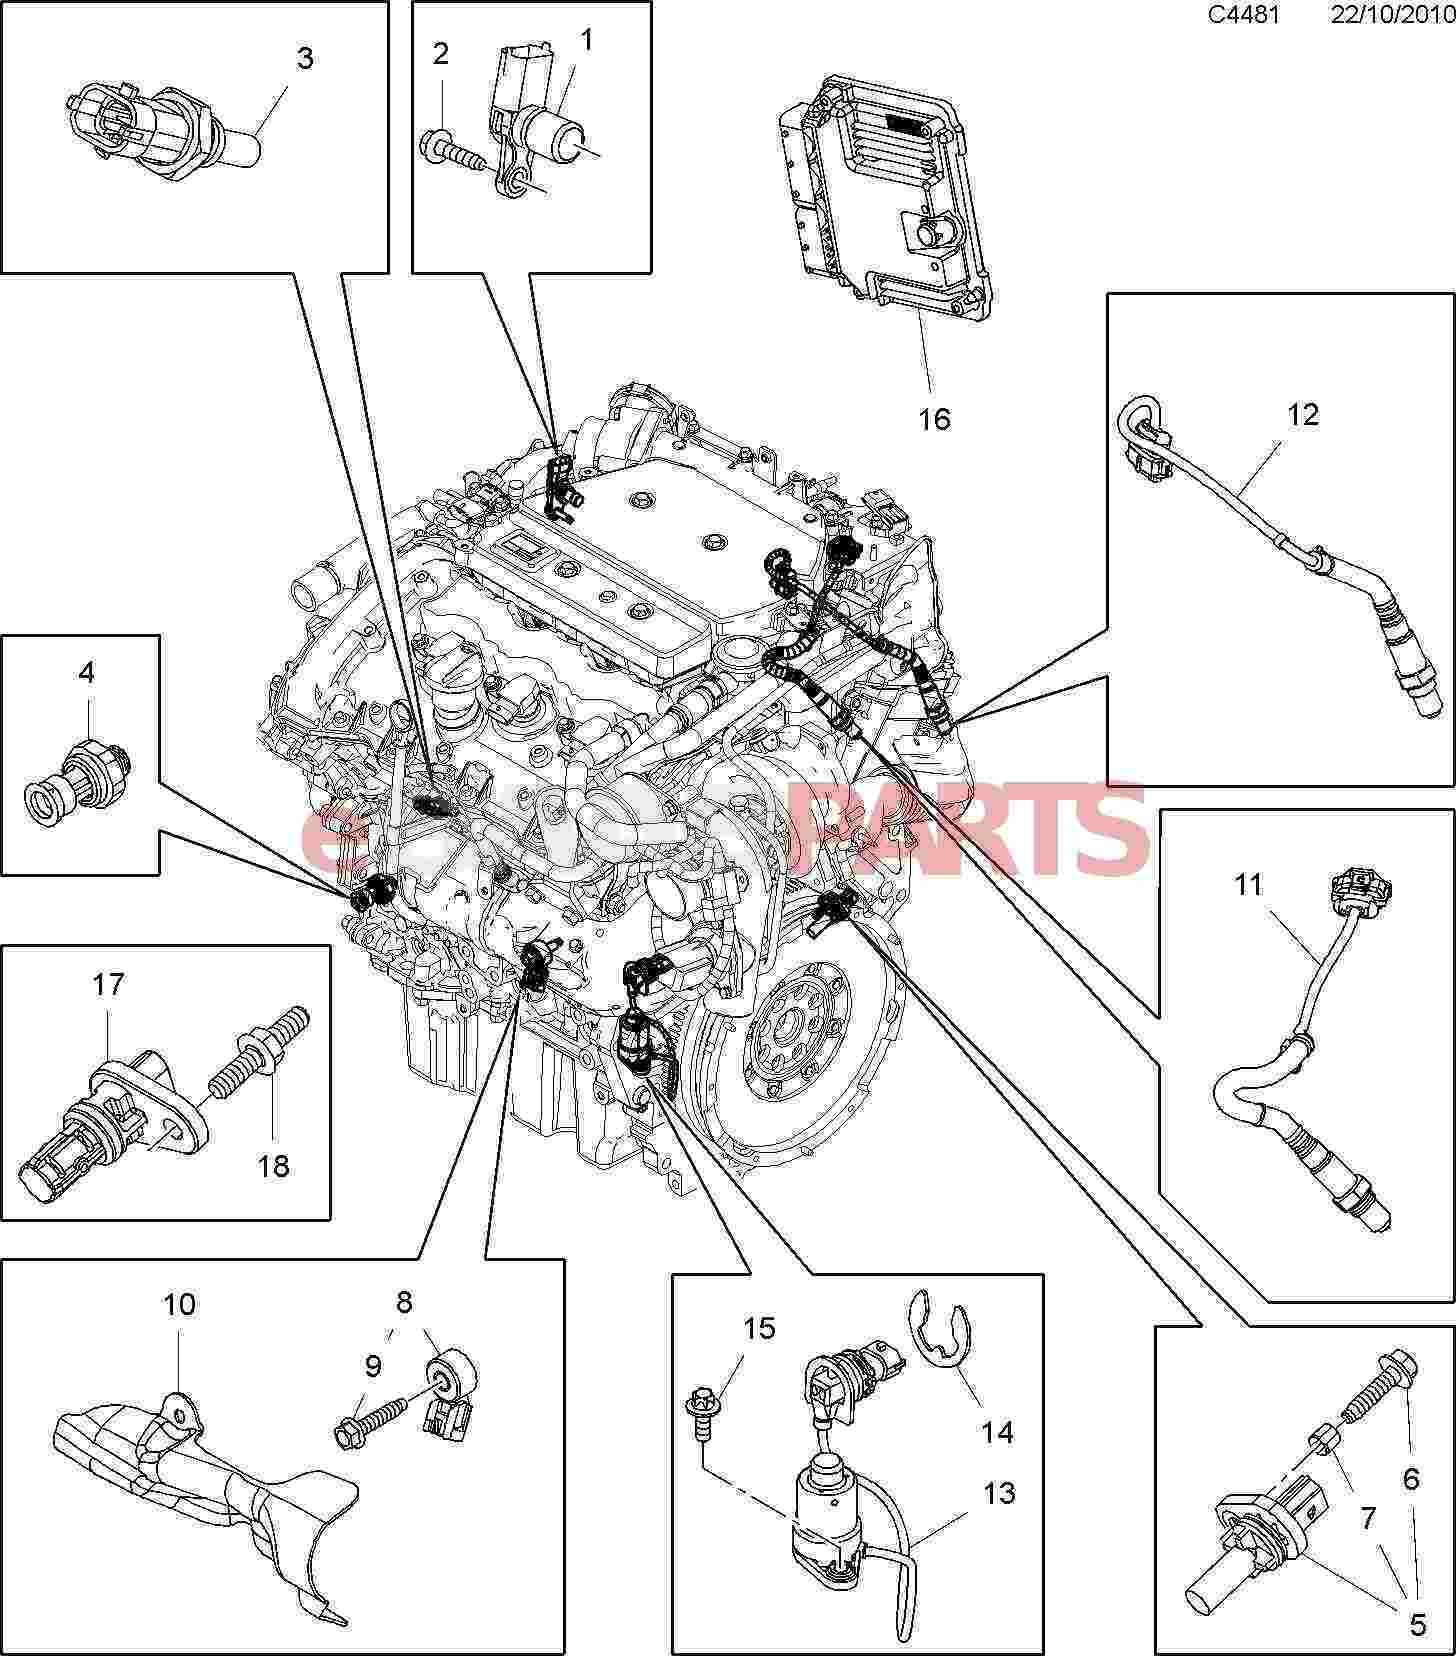 saab 93 wiring diagram gearbox oil